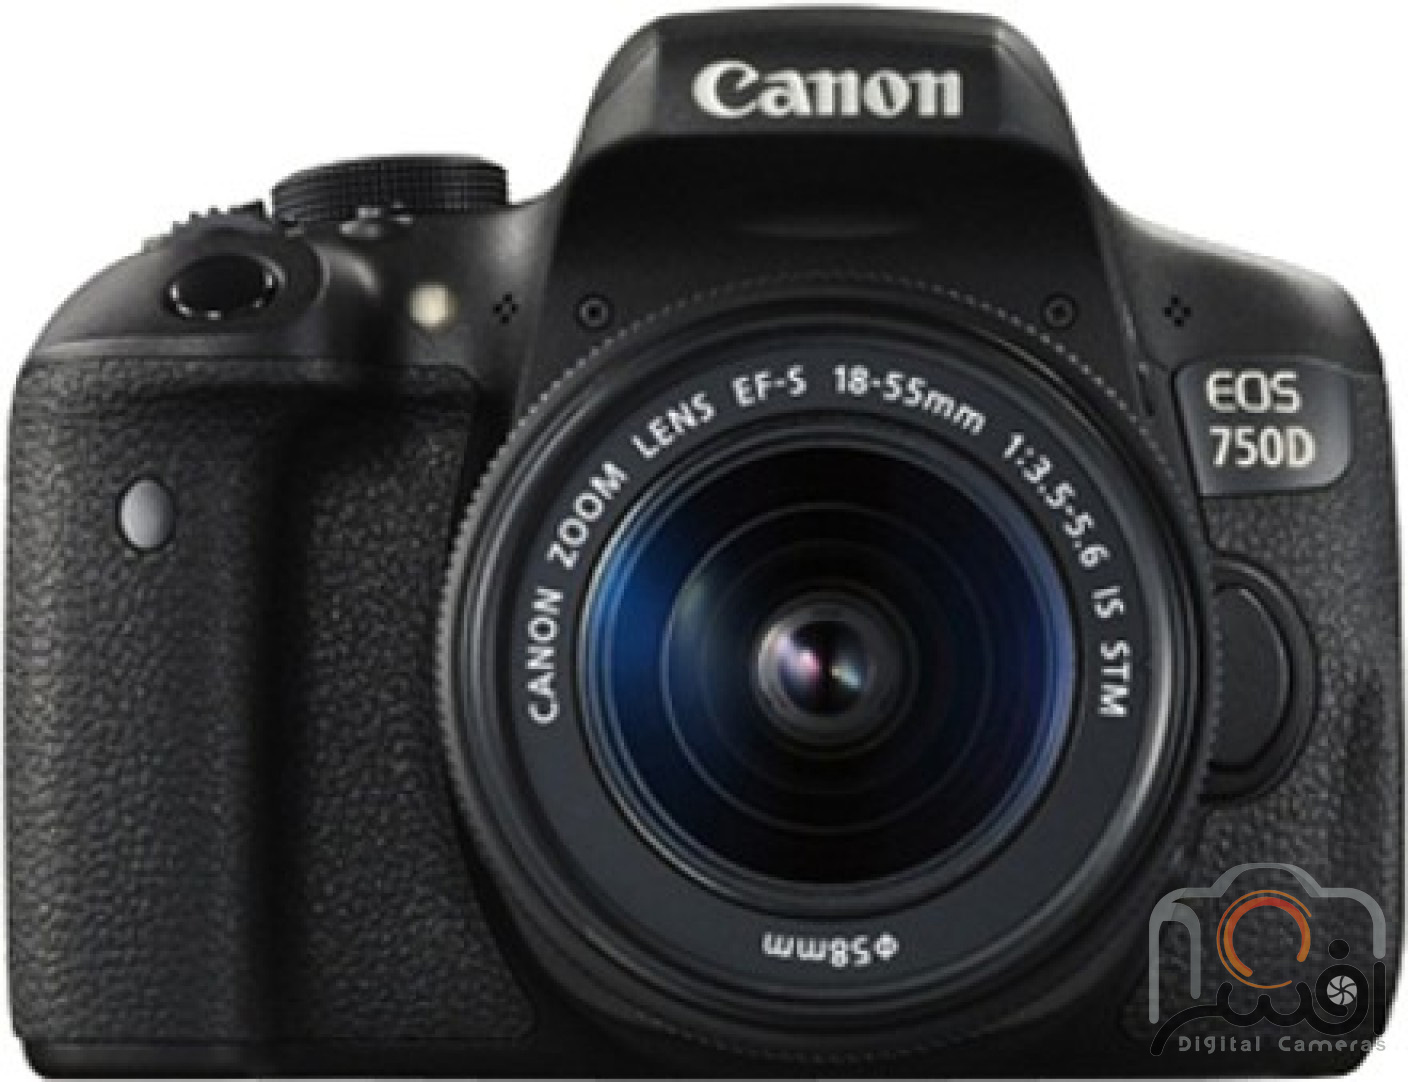 canon-eos-750d-kit-ef-s-18-55-mm-is-stm-dslr-original-imae77typaskcv7f